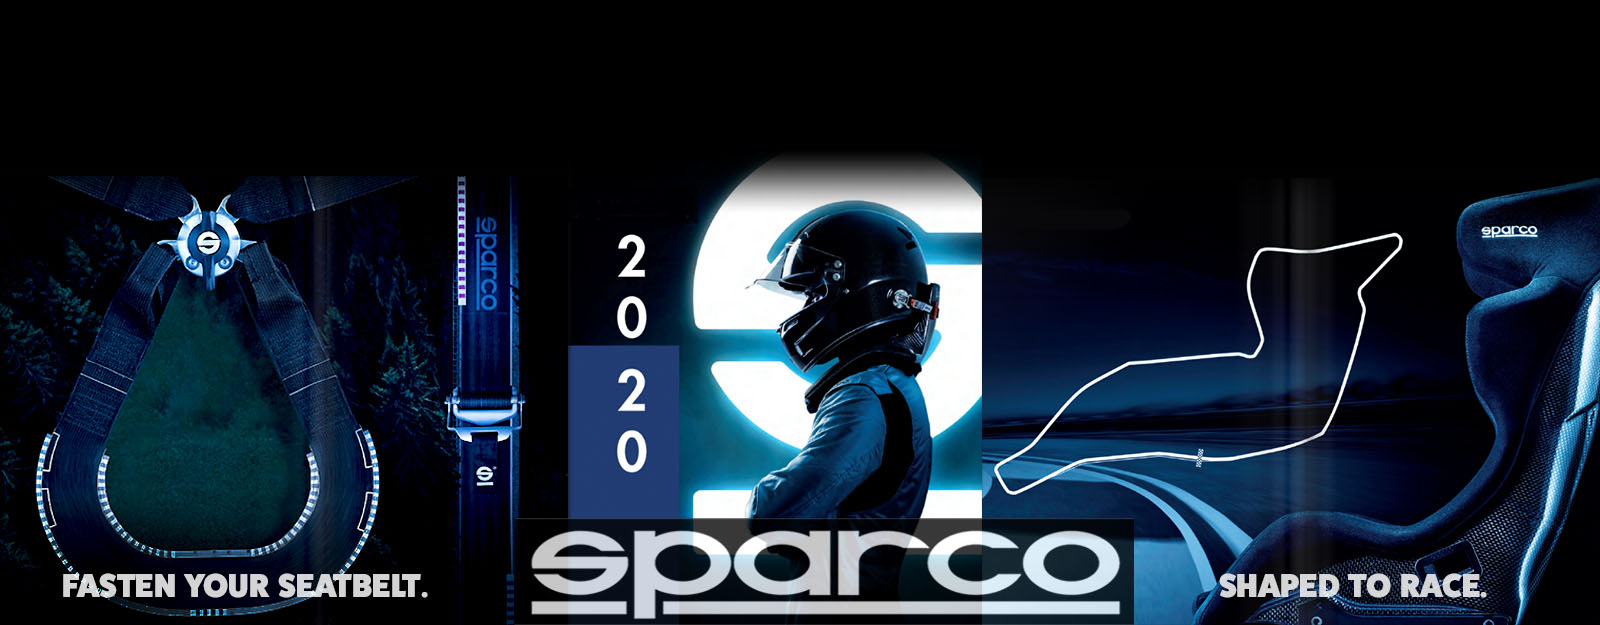 Sparco Racing Seats and Harnesses